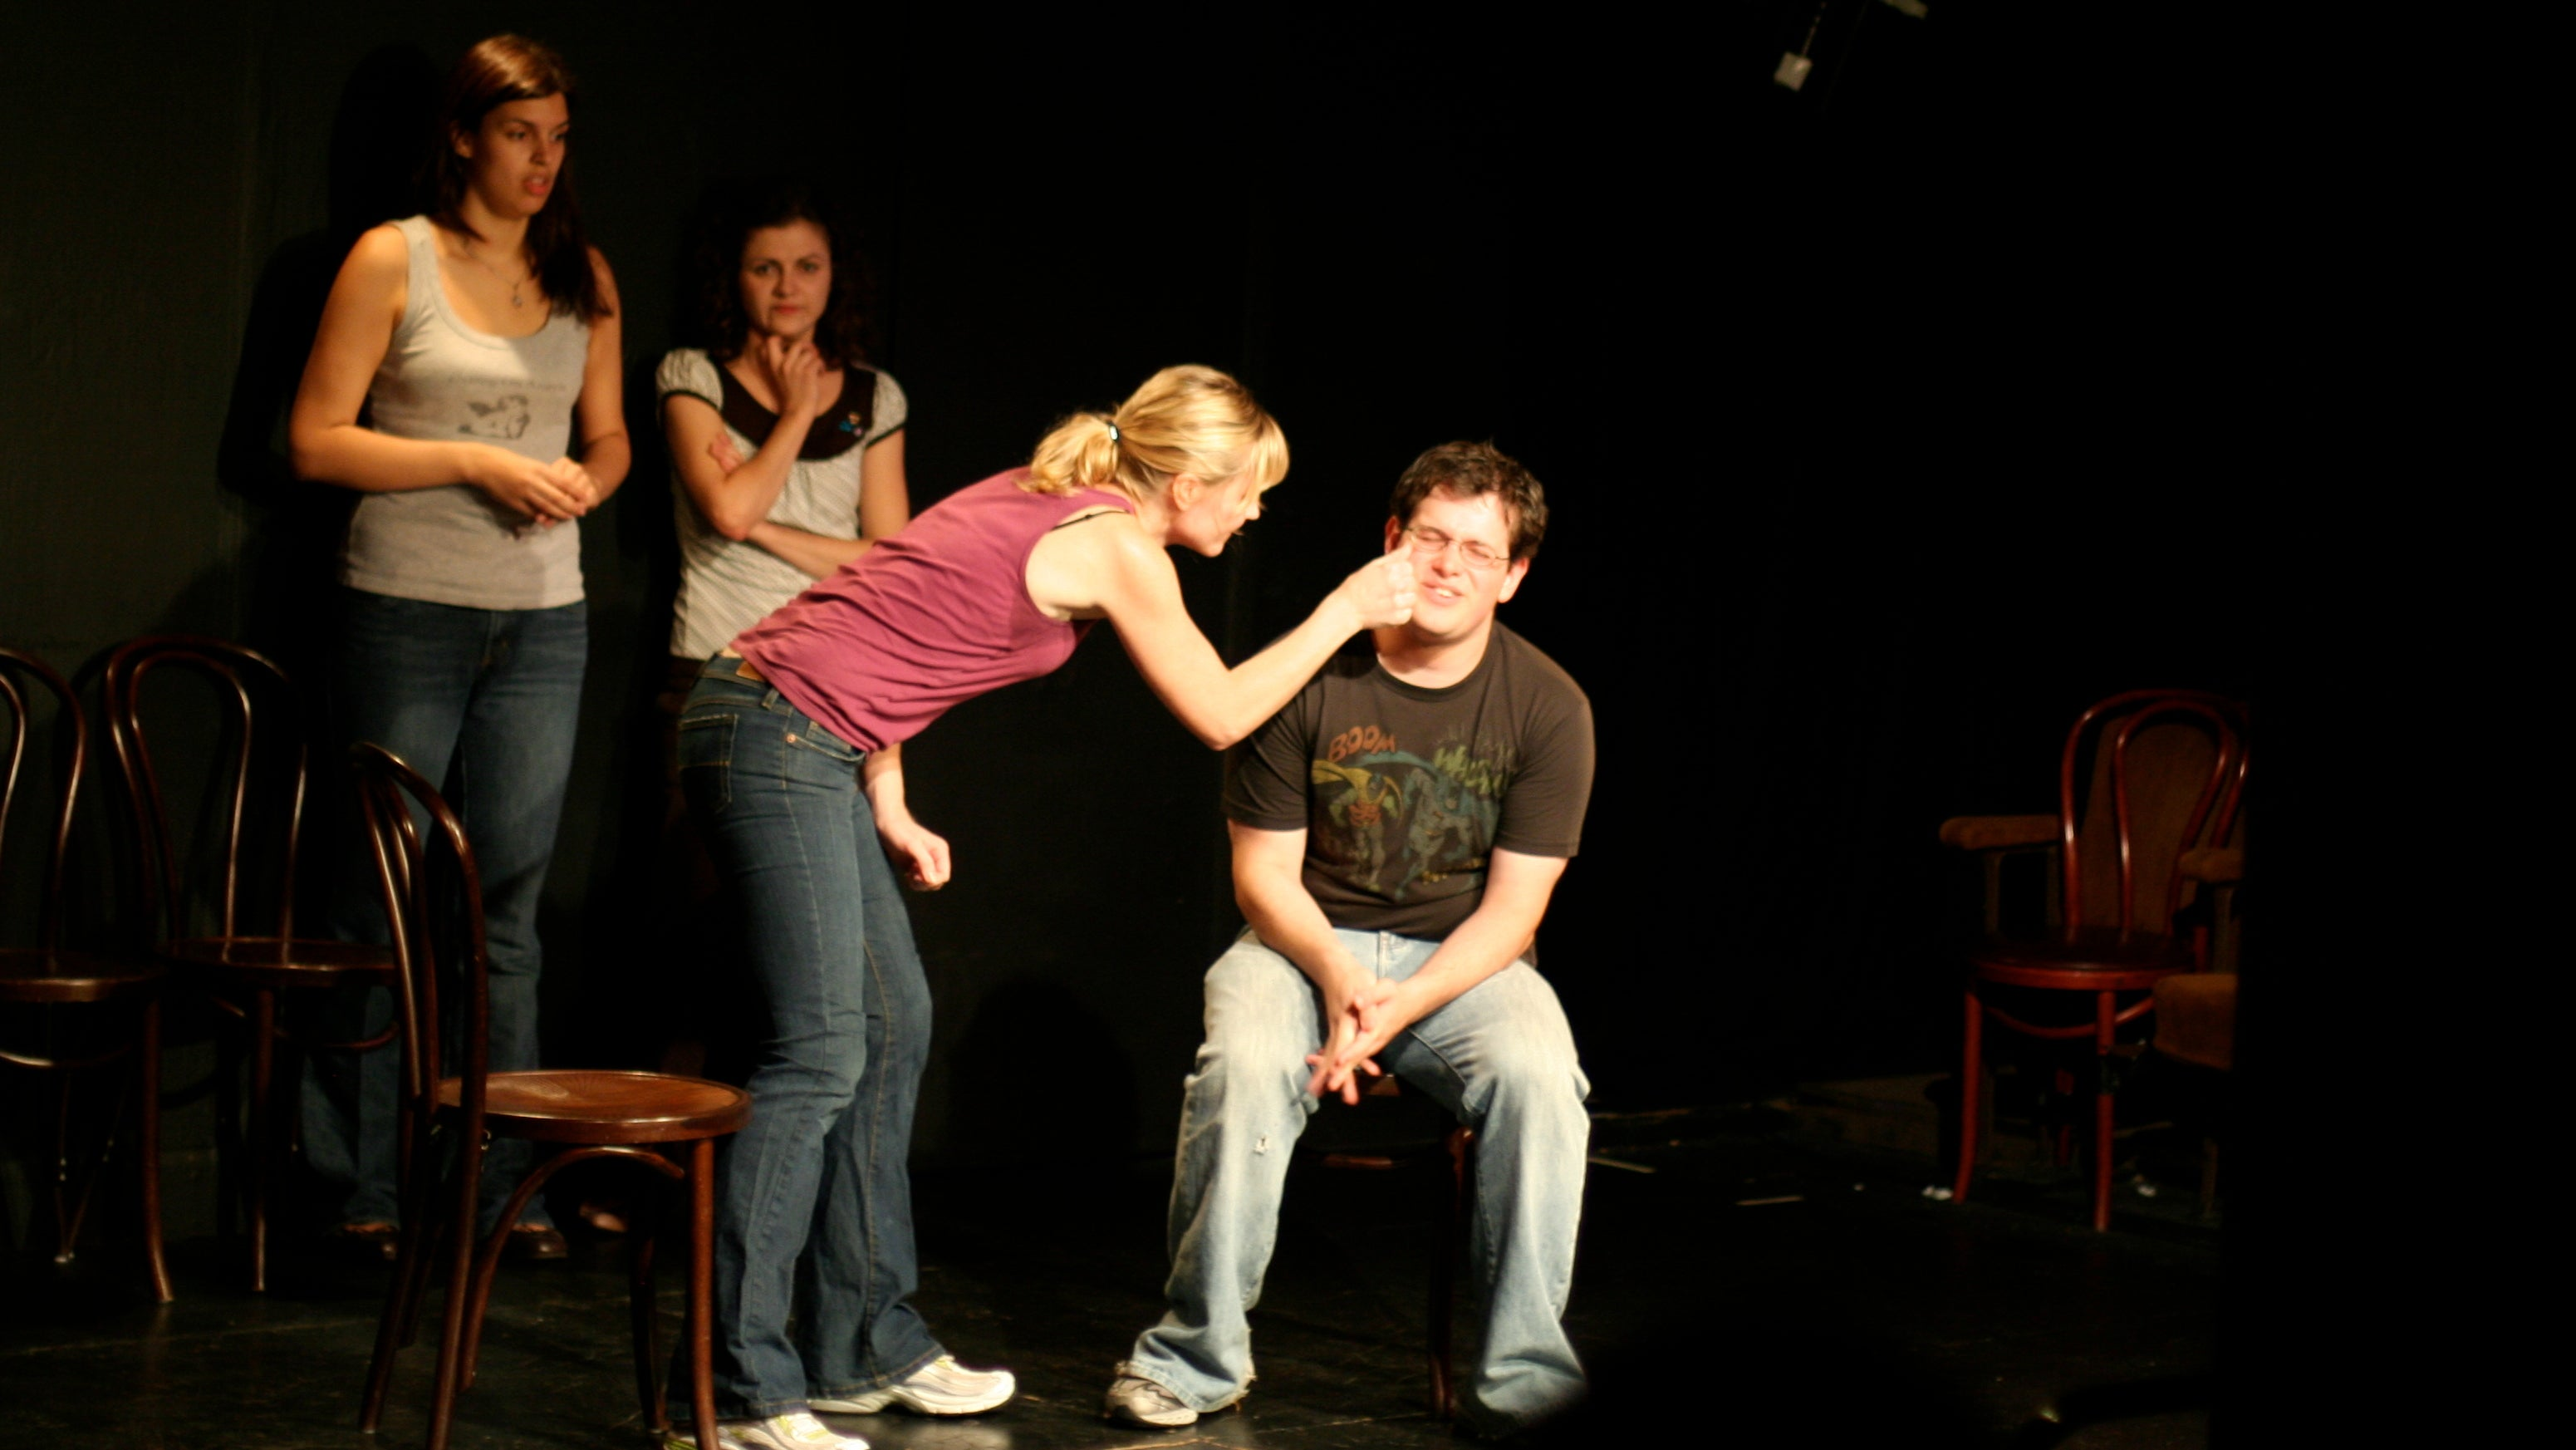 Use This Improv Comedy Rule To Avoid Arguments